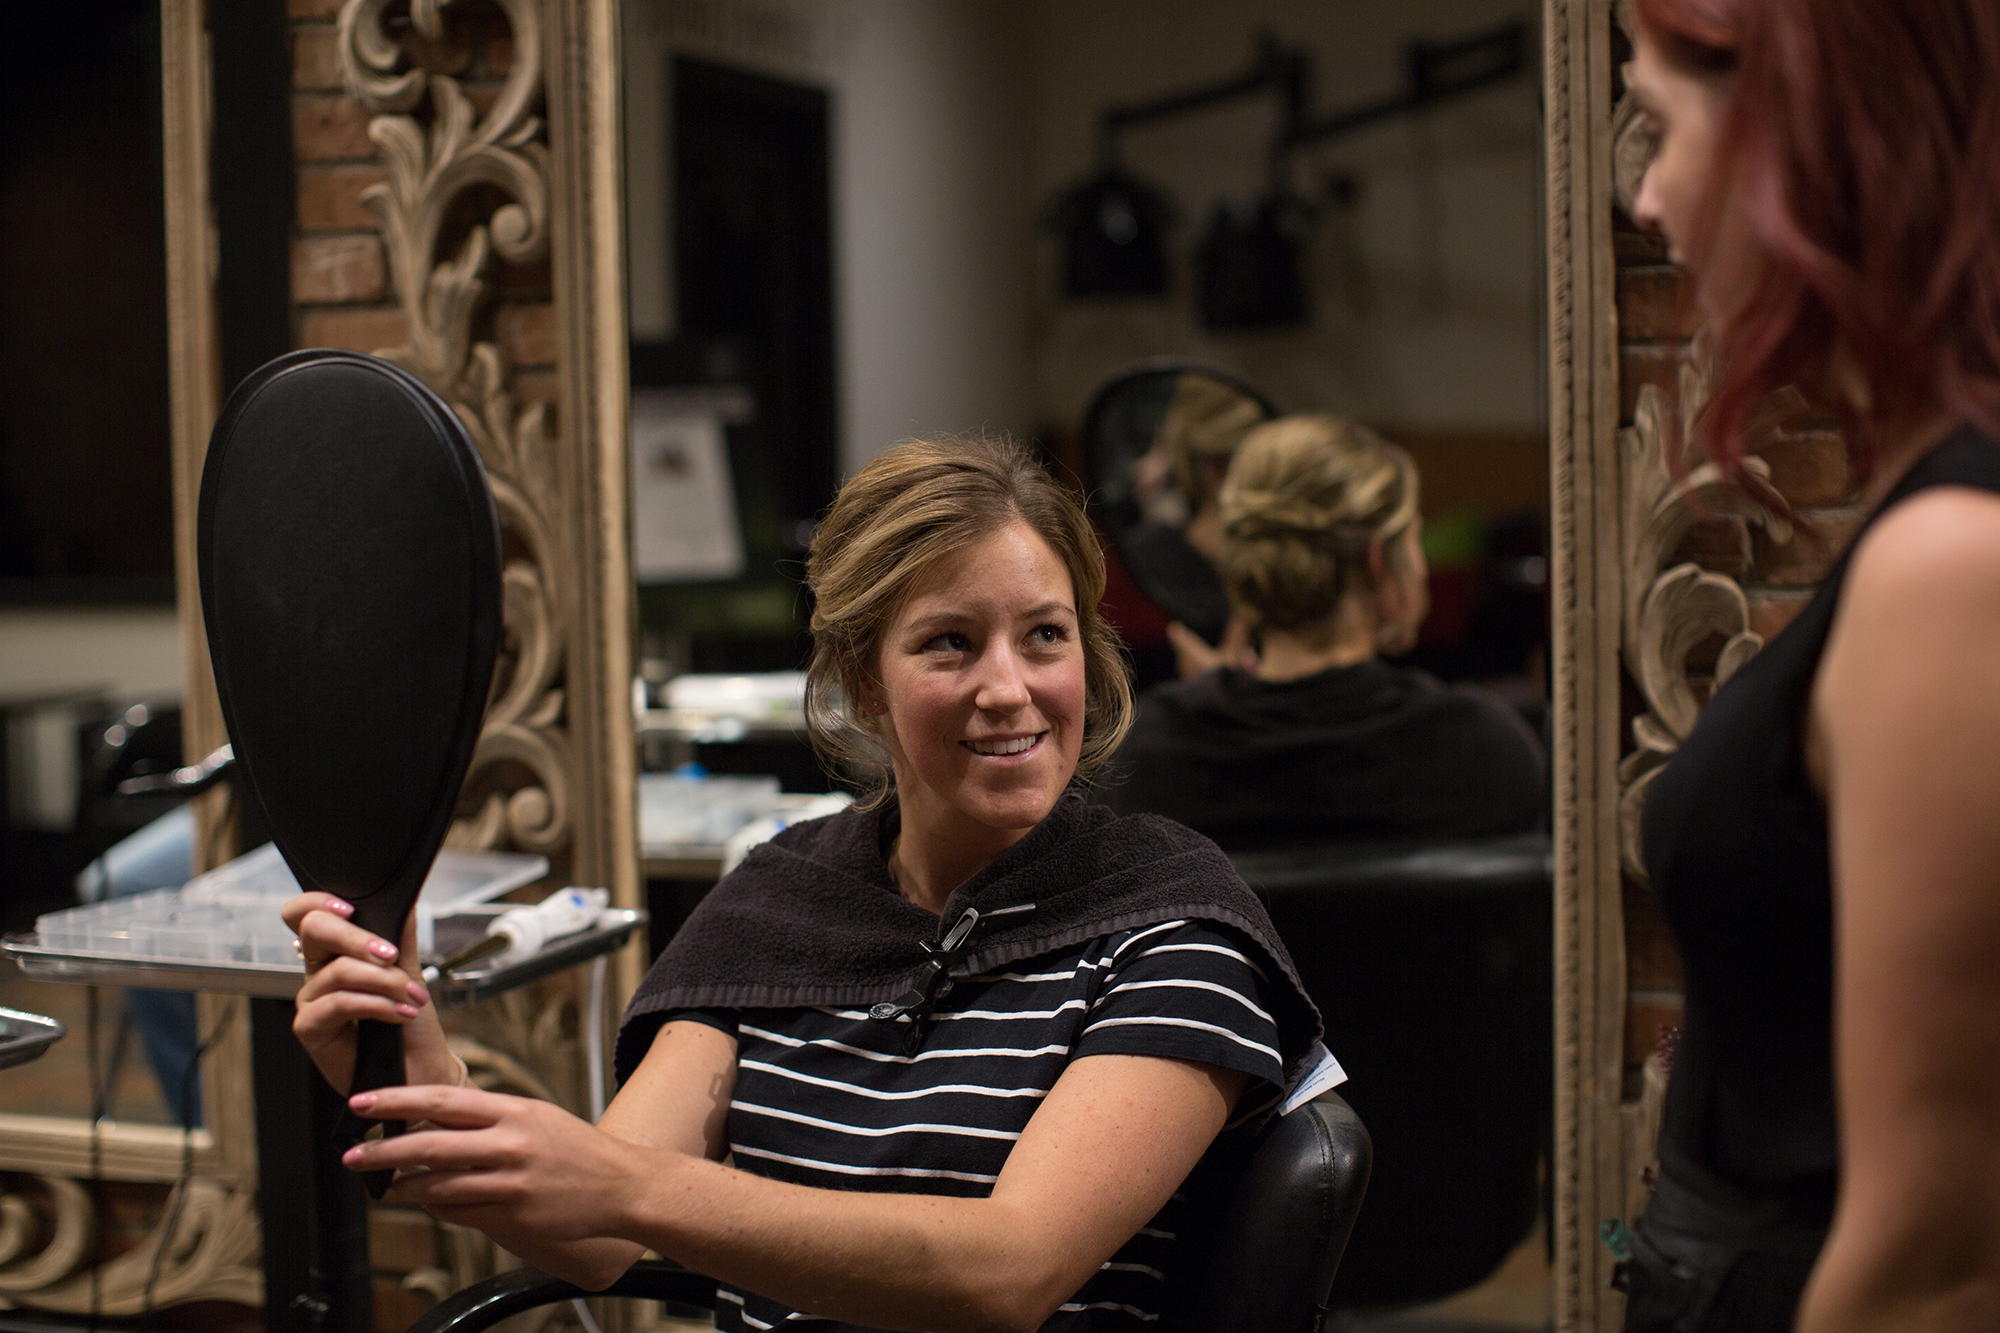 2018 Olympic Bronze medalist freeskier Brita Sigourney gets her hair done at John Paul Mitchell Systems' focus salon, Raika Studio, for the 2018 New York Gold Medal Gala.